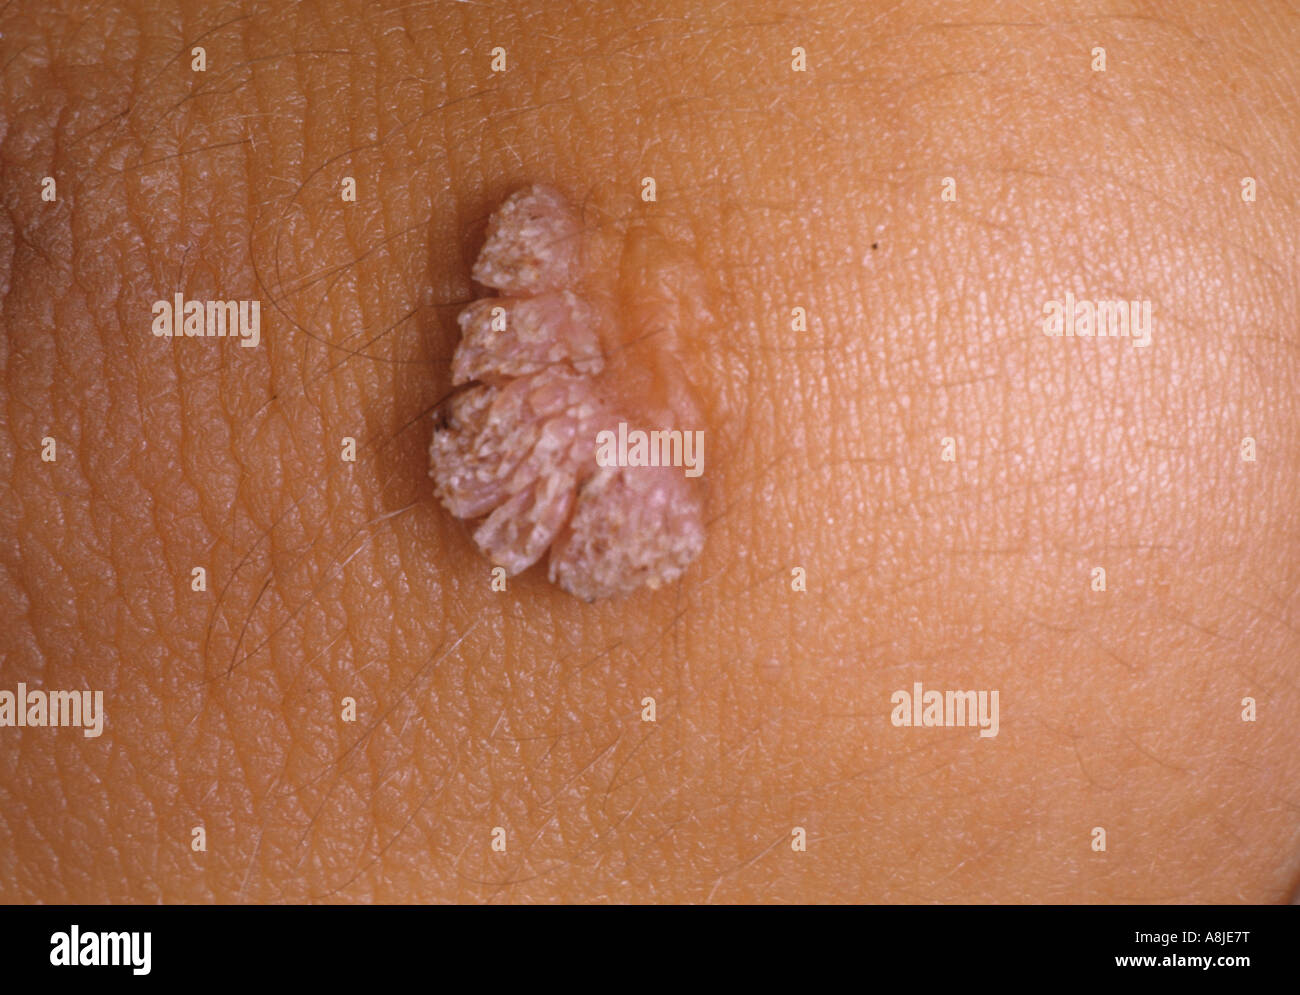 Benign epithelial hyperplasia is manifested as papules and plaques caused by the Human Papilloma Virus HPV. - Stock Image